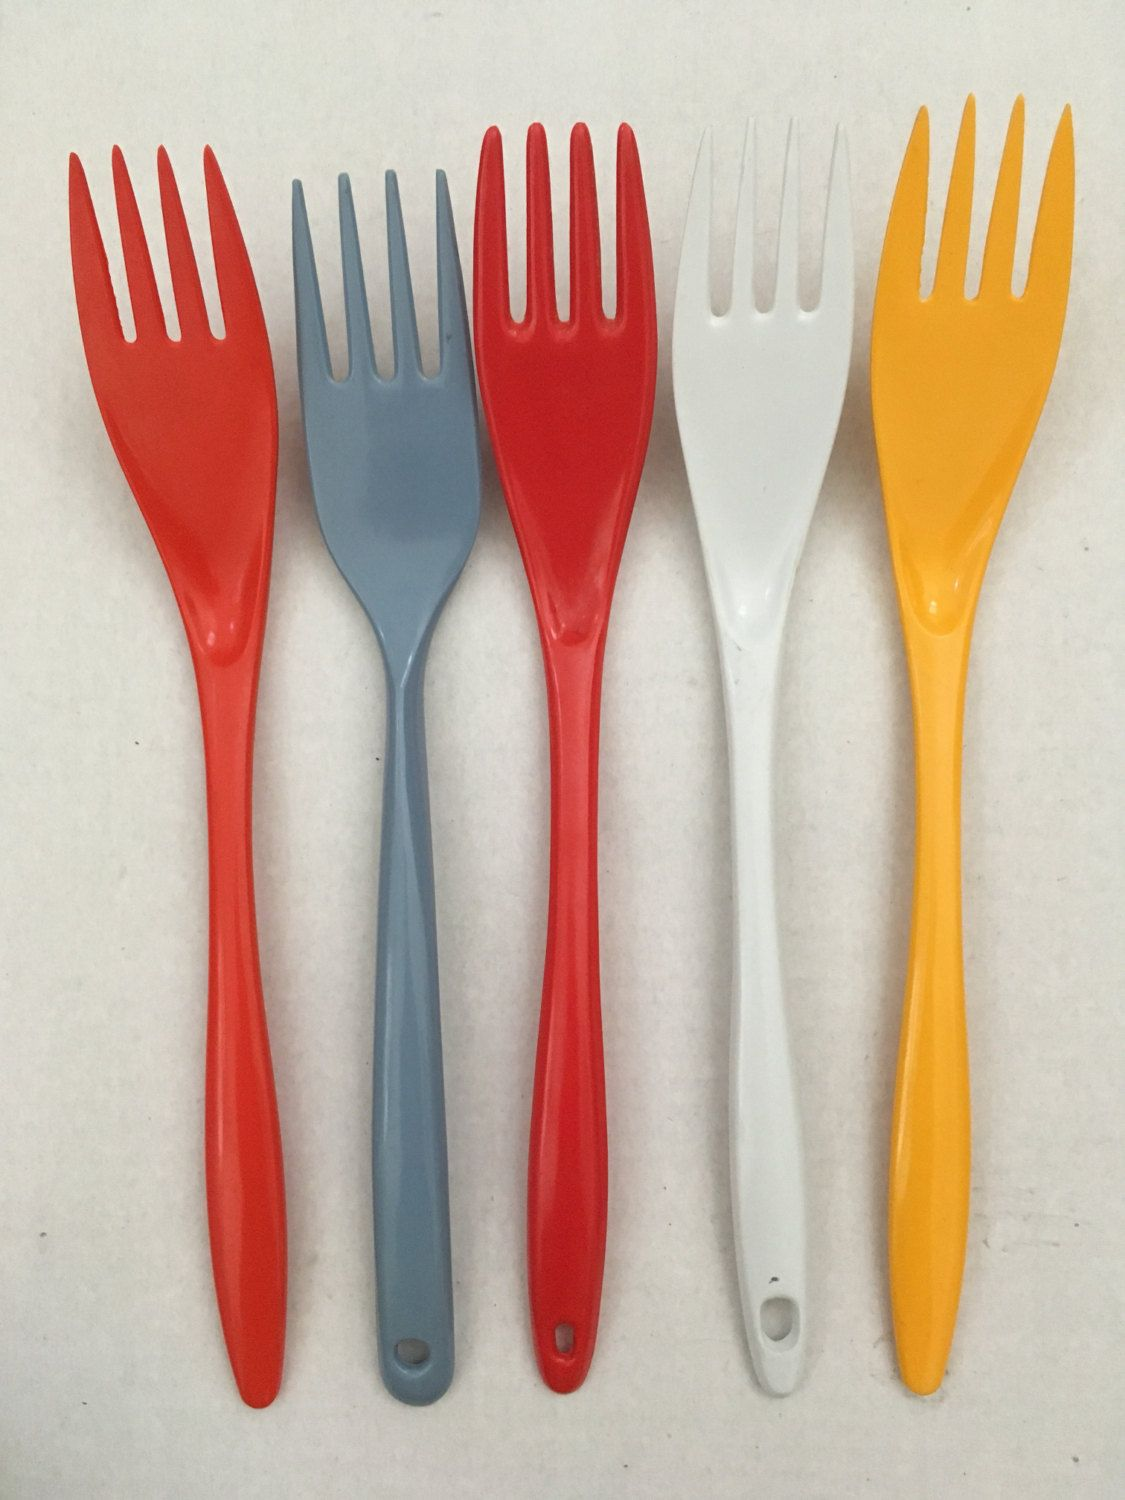 Vintage Melamine Kitchen Cooking Utensils Fork Set Of 5 By